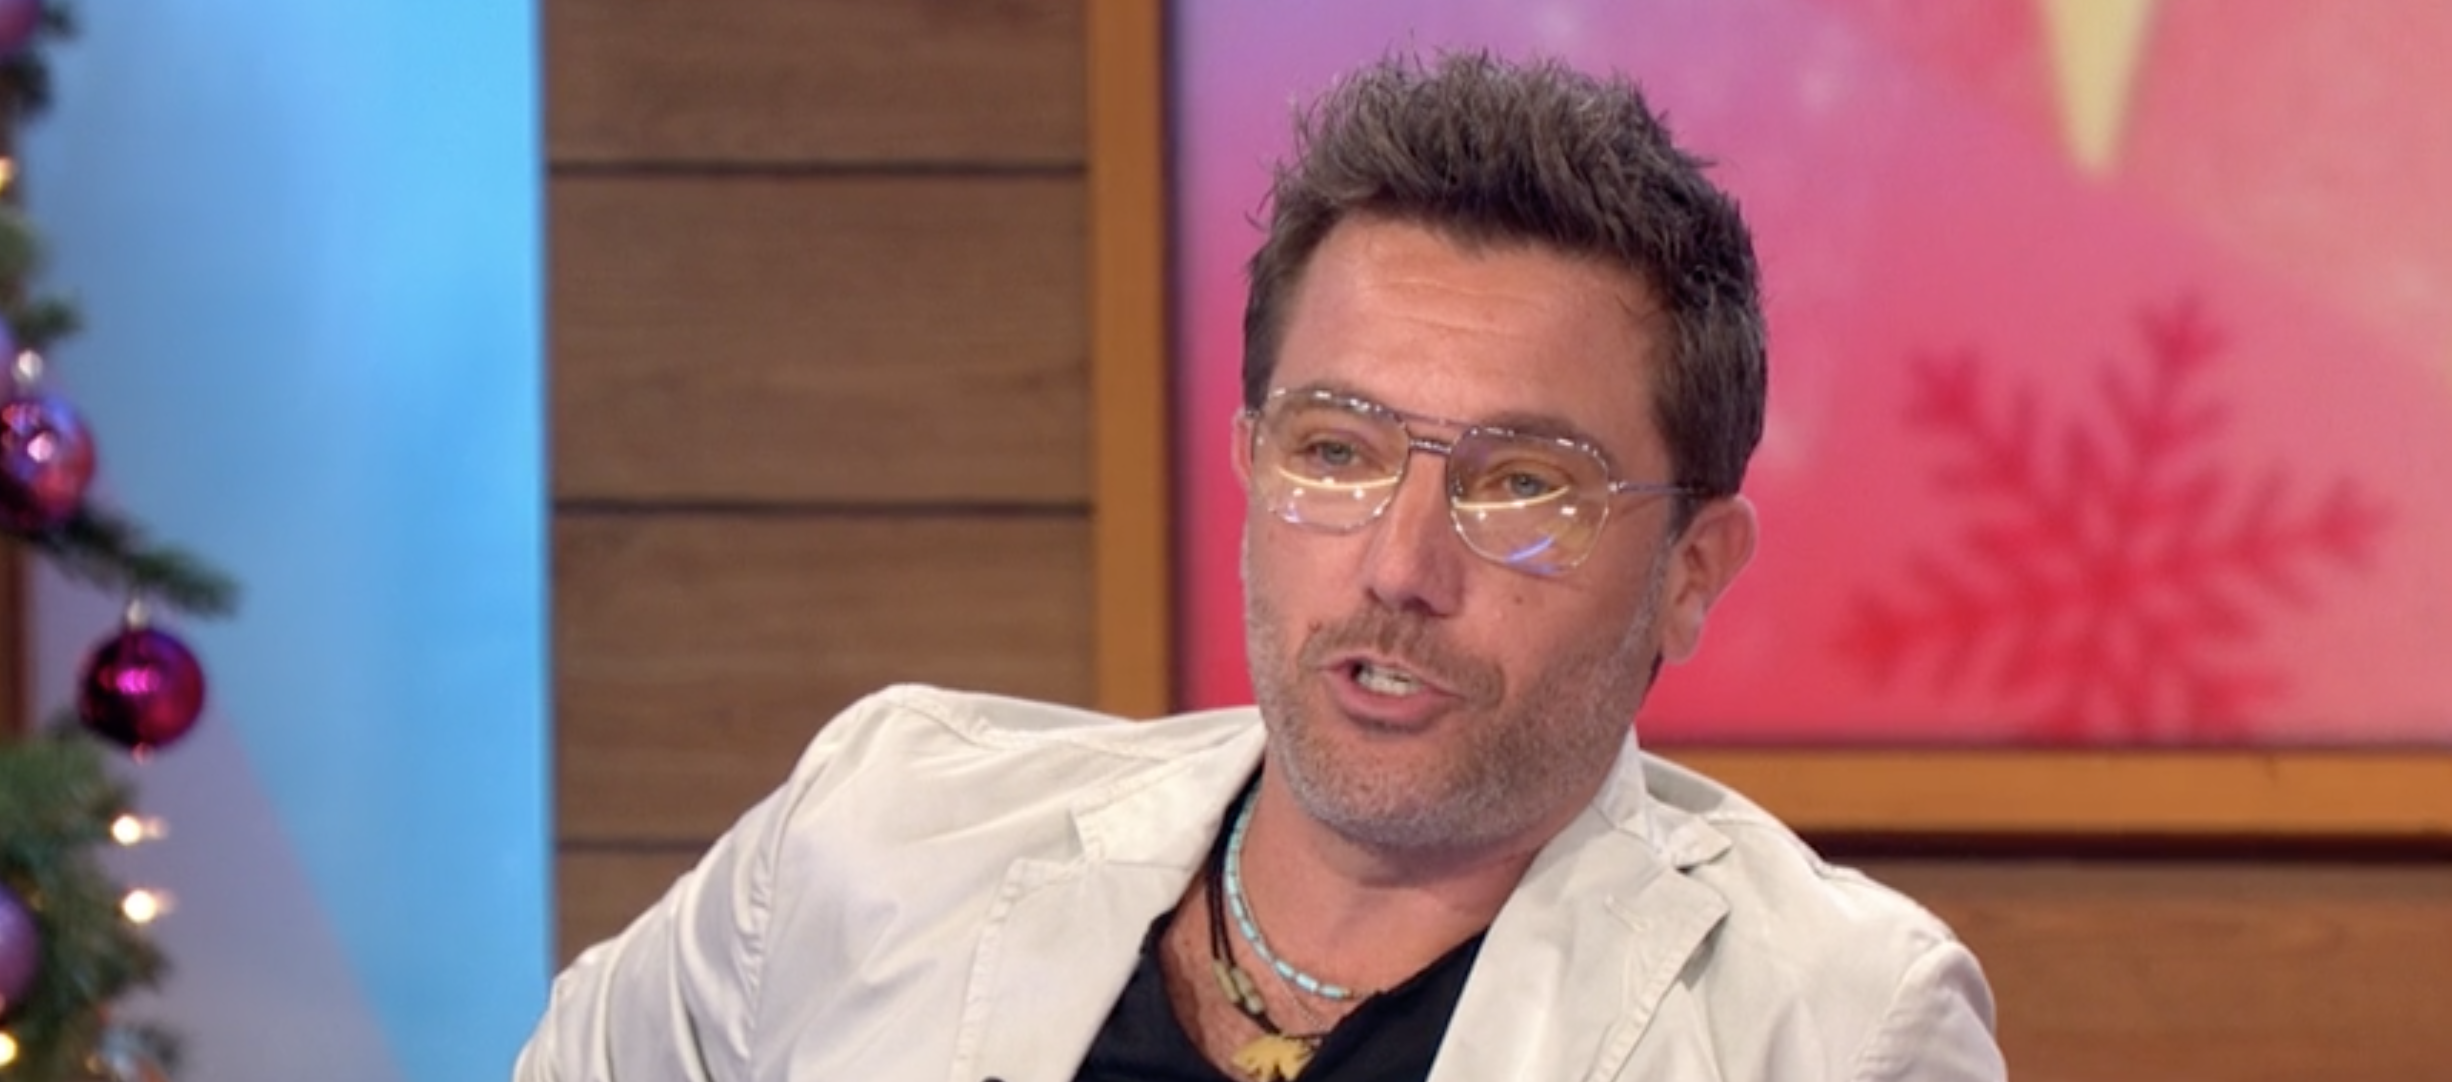 Gino D'Acampo shocks viewers with his X-rated Loose Women chat